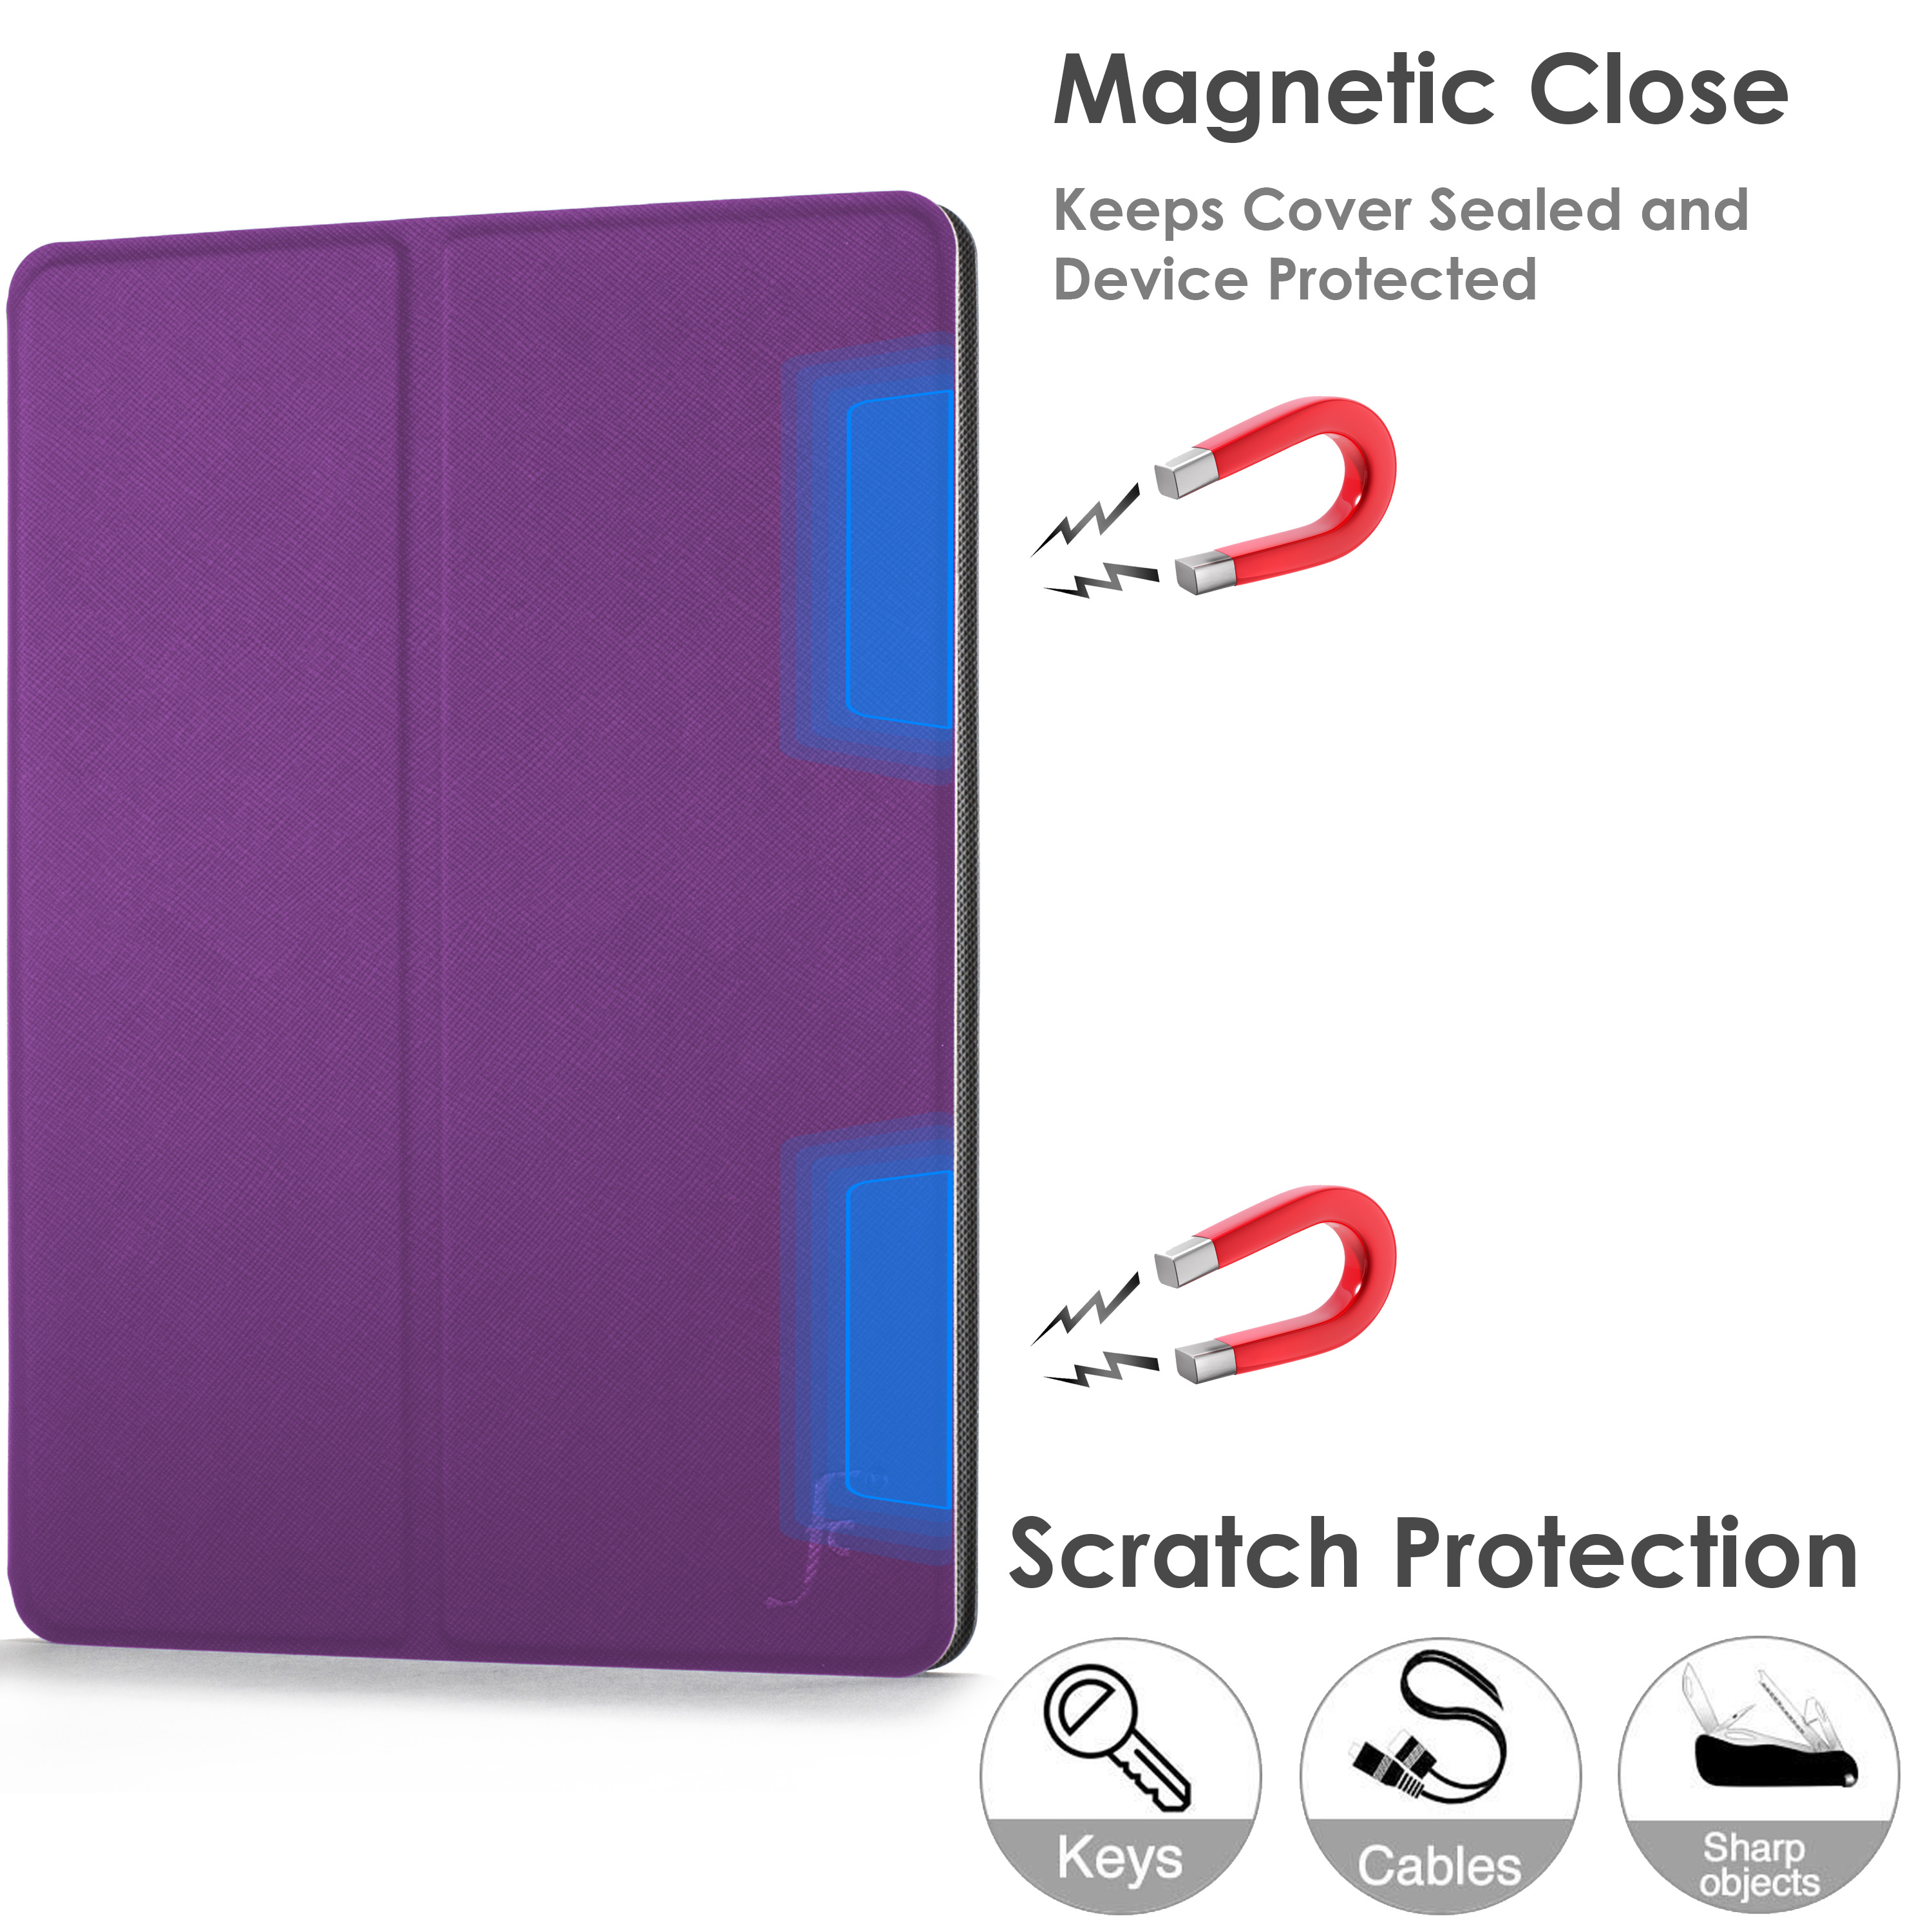 miniature 63 - Samsung Galaxy Tab A 10.1 2019 Étui Magnétique Protection & Support + Stylet